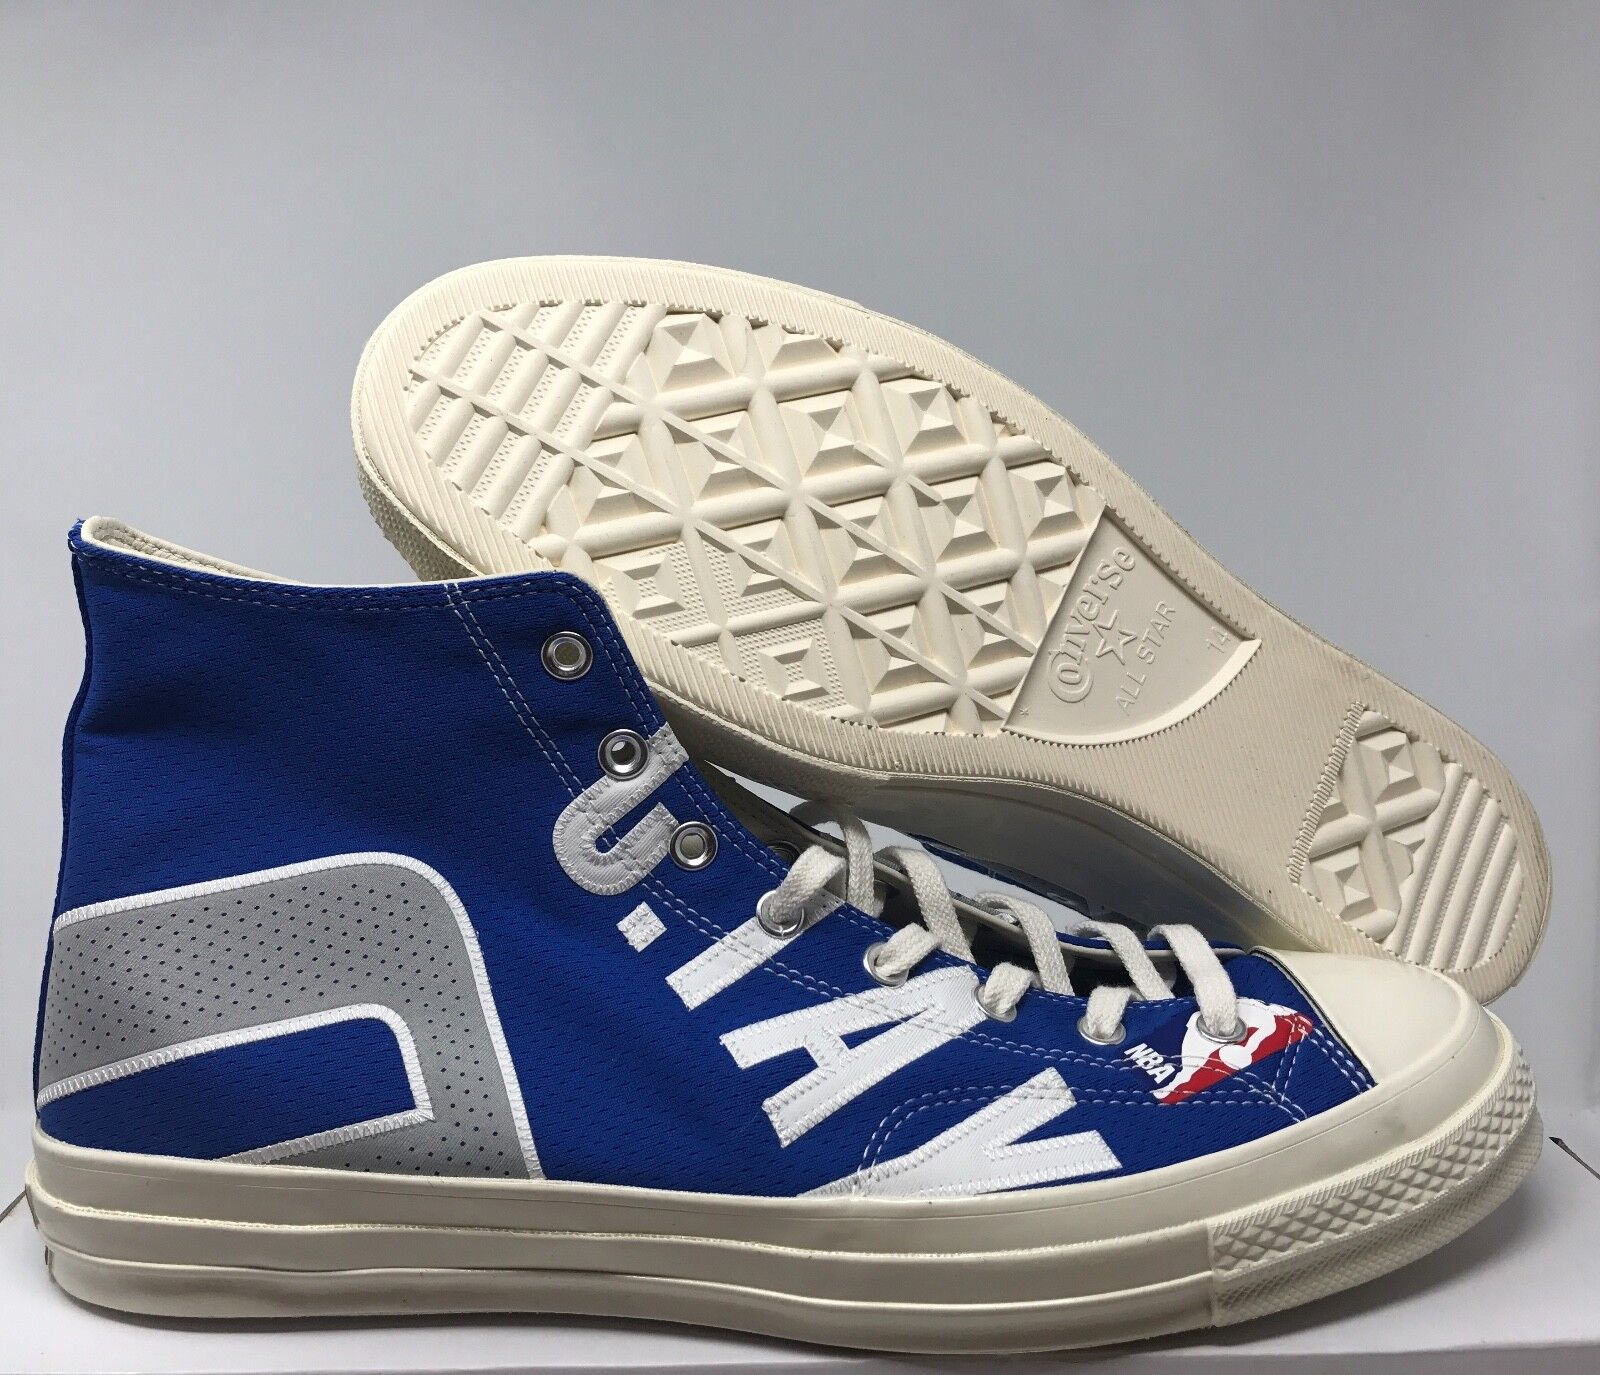 CONVERSE CHUCK TAYLOR ALL STAR 70 NBA GAME DAY DALLAS SZ 14